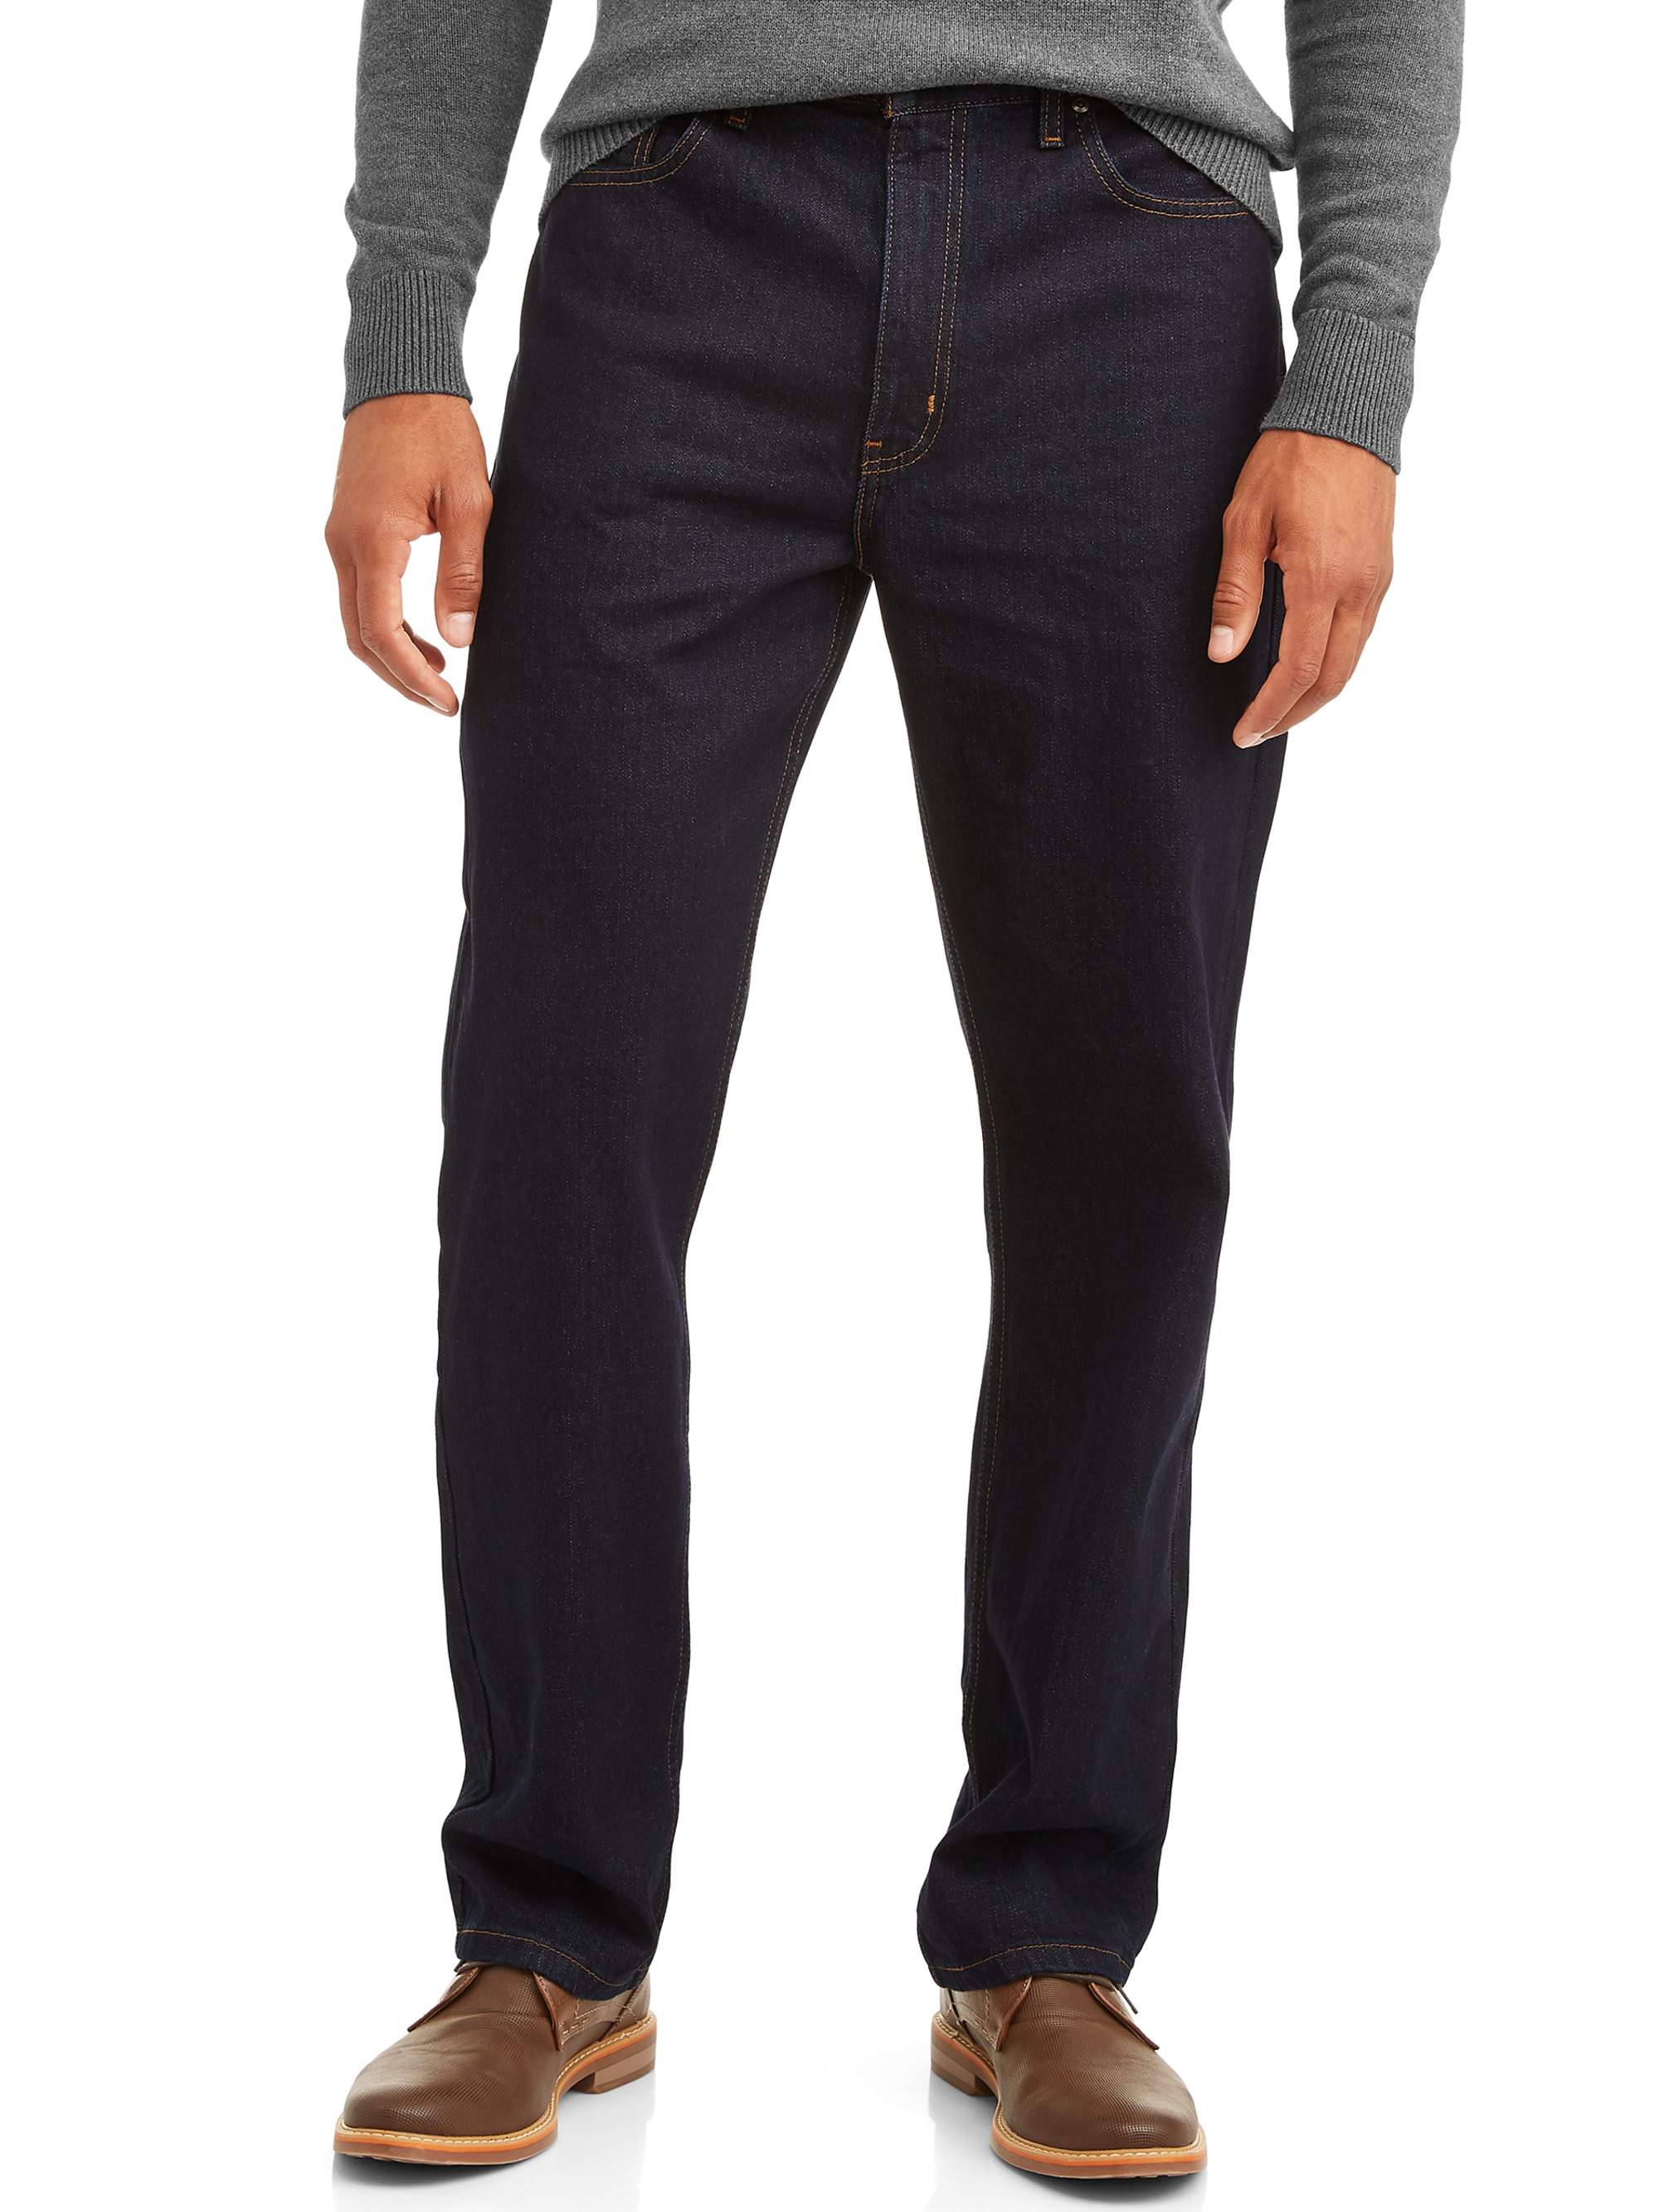 George Men's Basic Five Pocket Jeans